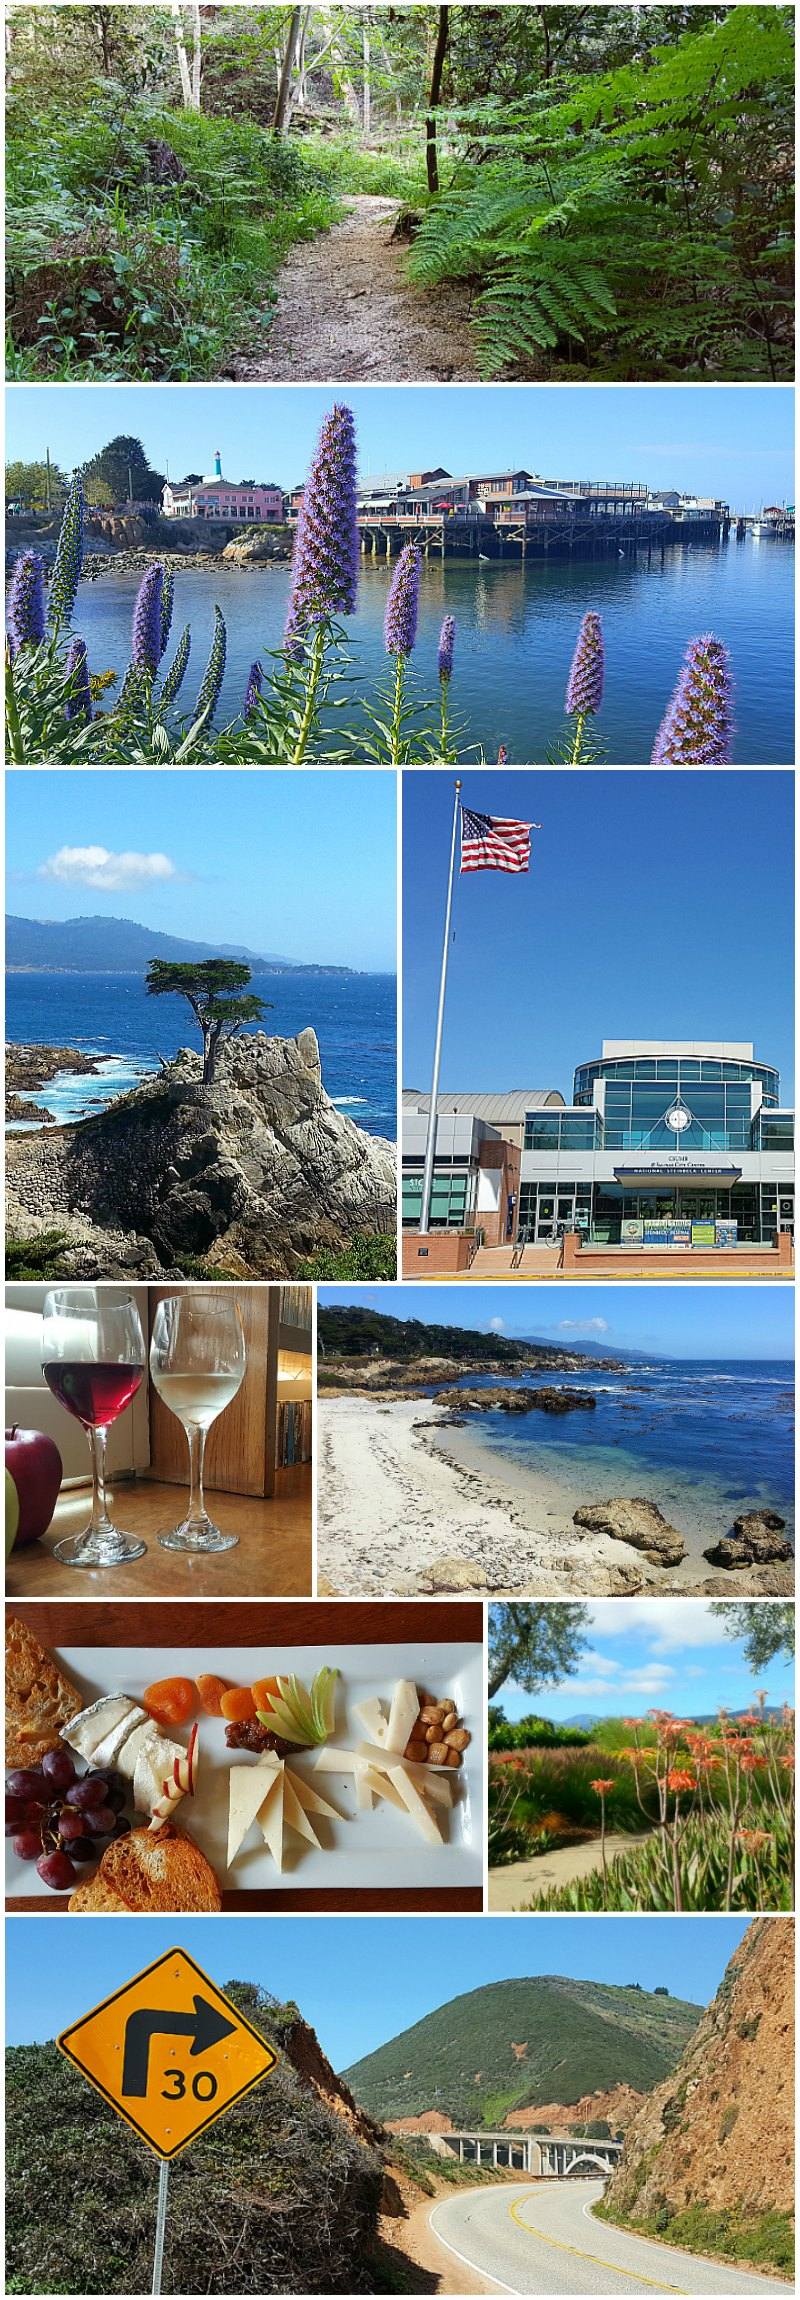 5 Fun Places to Go in Monterey County - California Travel